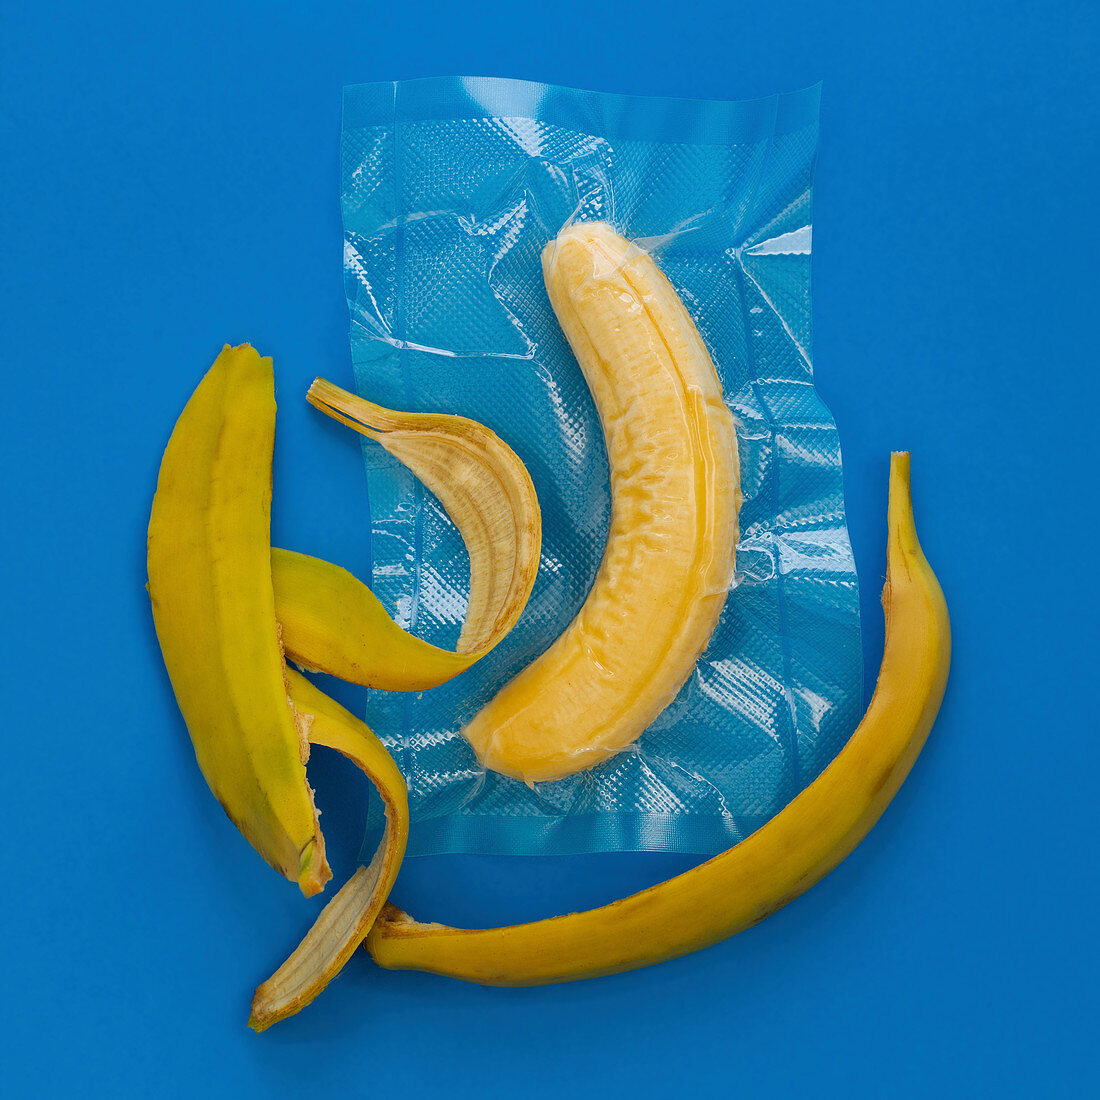 A peeled banana vacuum-packed in a plastic bag